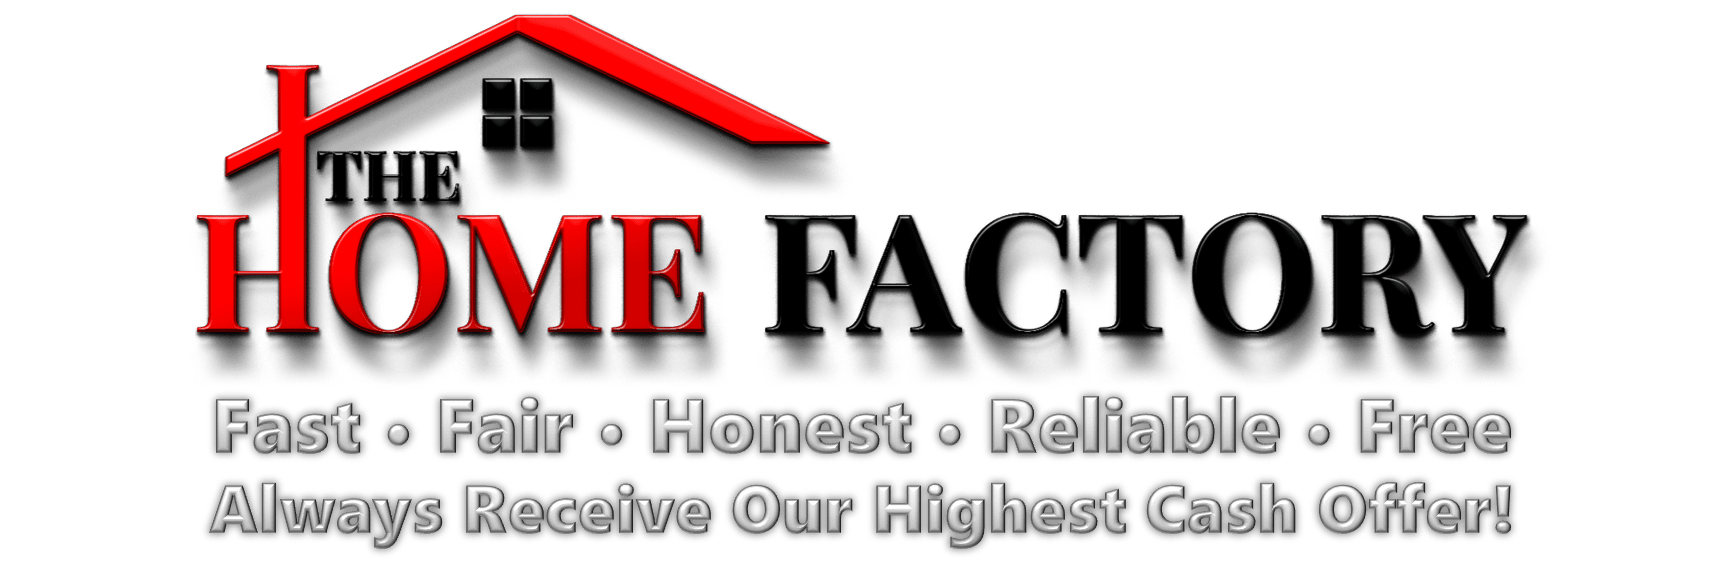 The-Home-Factory-Fast-Fair-Honest-Reliable-Free-Always-Receive-Our-Highest-Cash-Offer